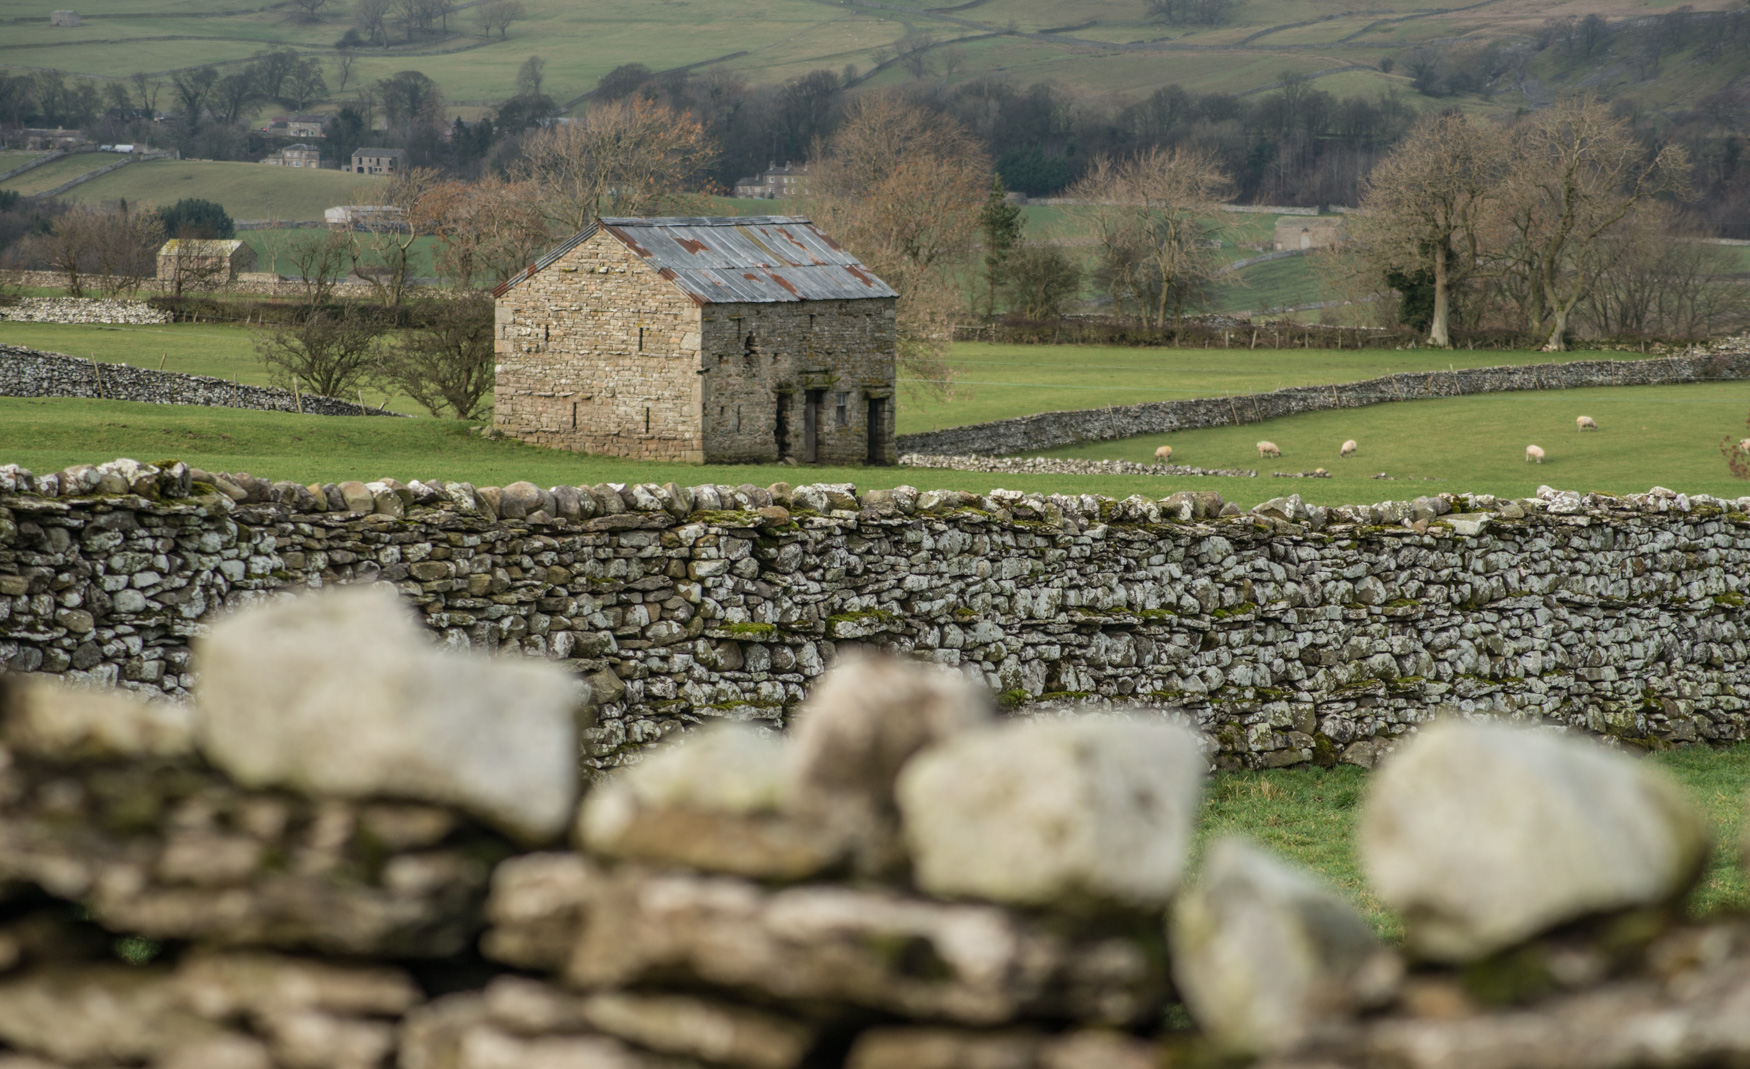 Walls and Barns : looking into Wensleydale from Thornton Rust, Yorkshire Dales